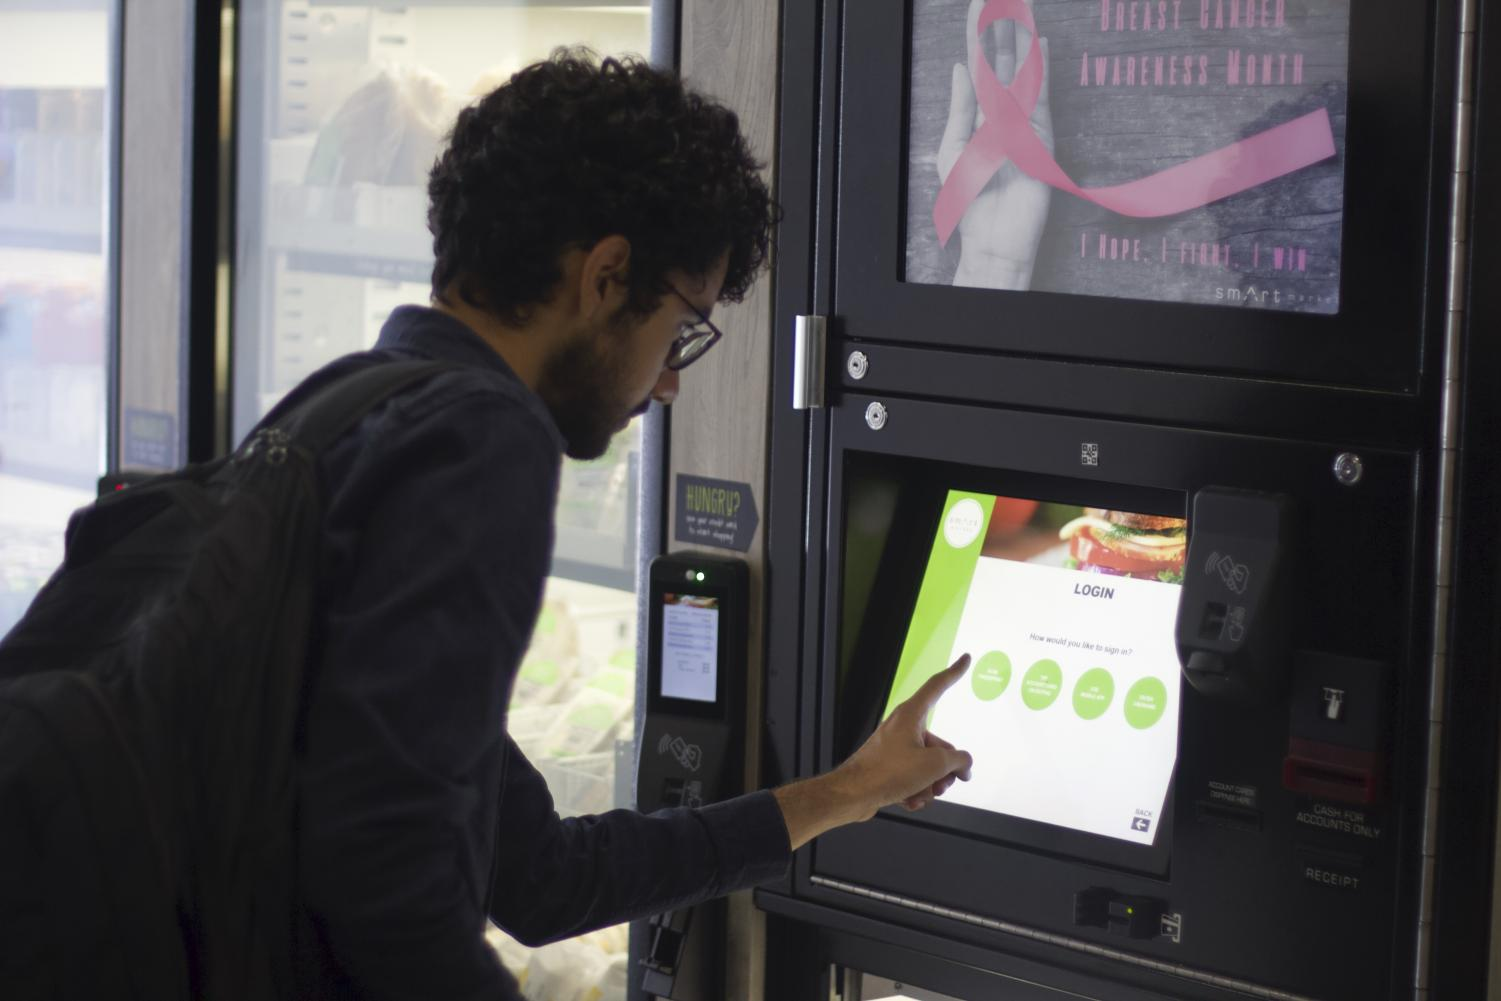 A San Diego City College student uses the Smart Market vending machine. Photo by Sonny Garibay